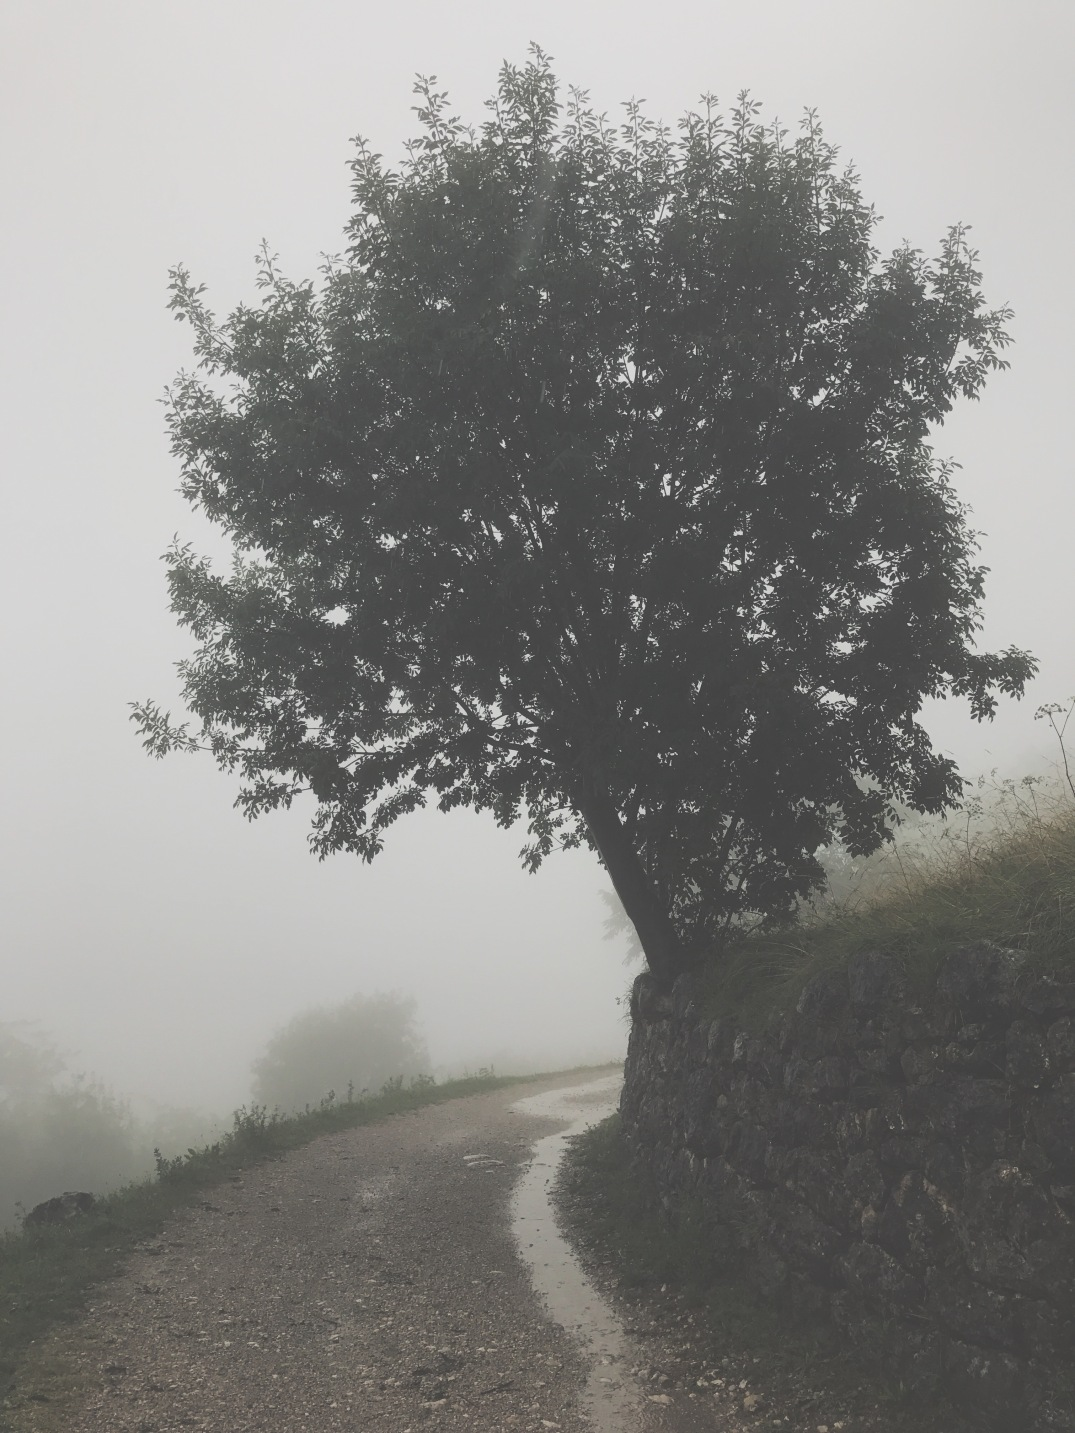 foggy mountain road, Italy